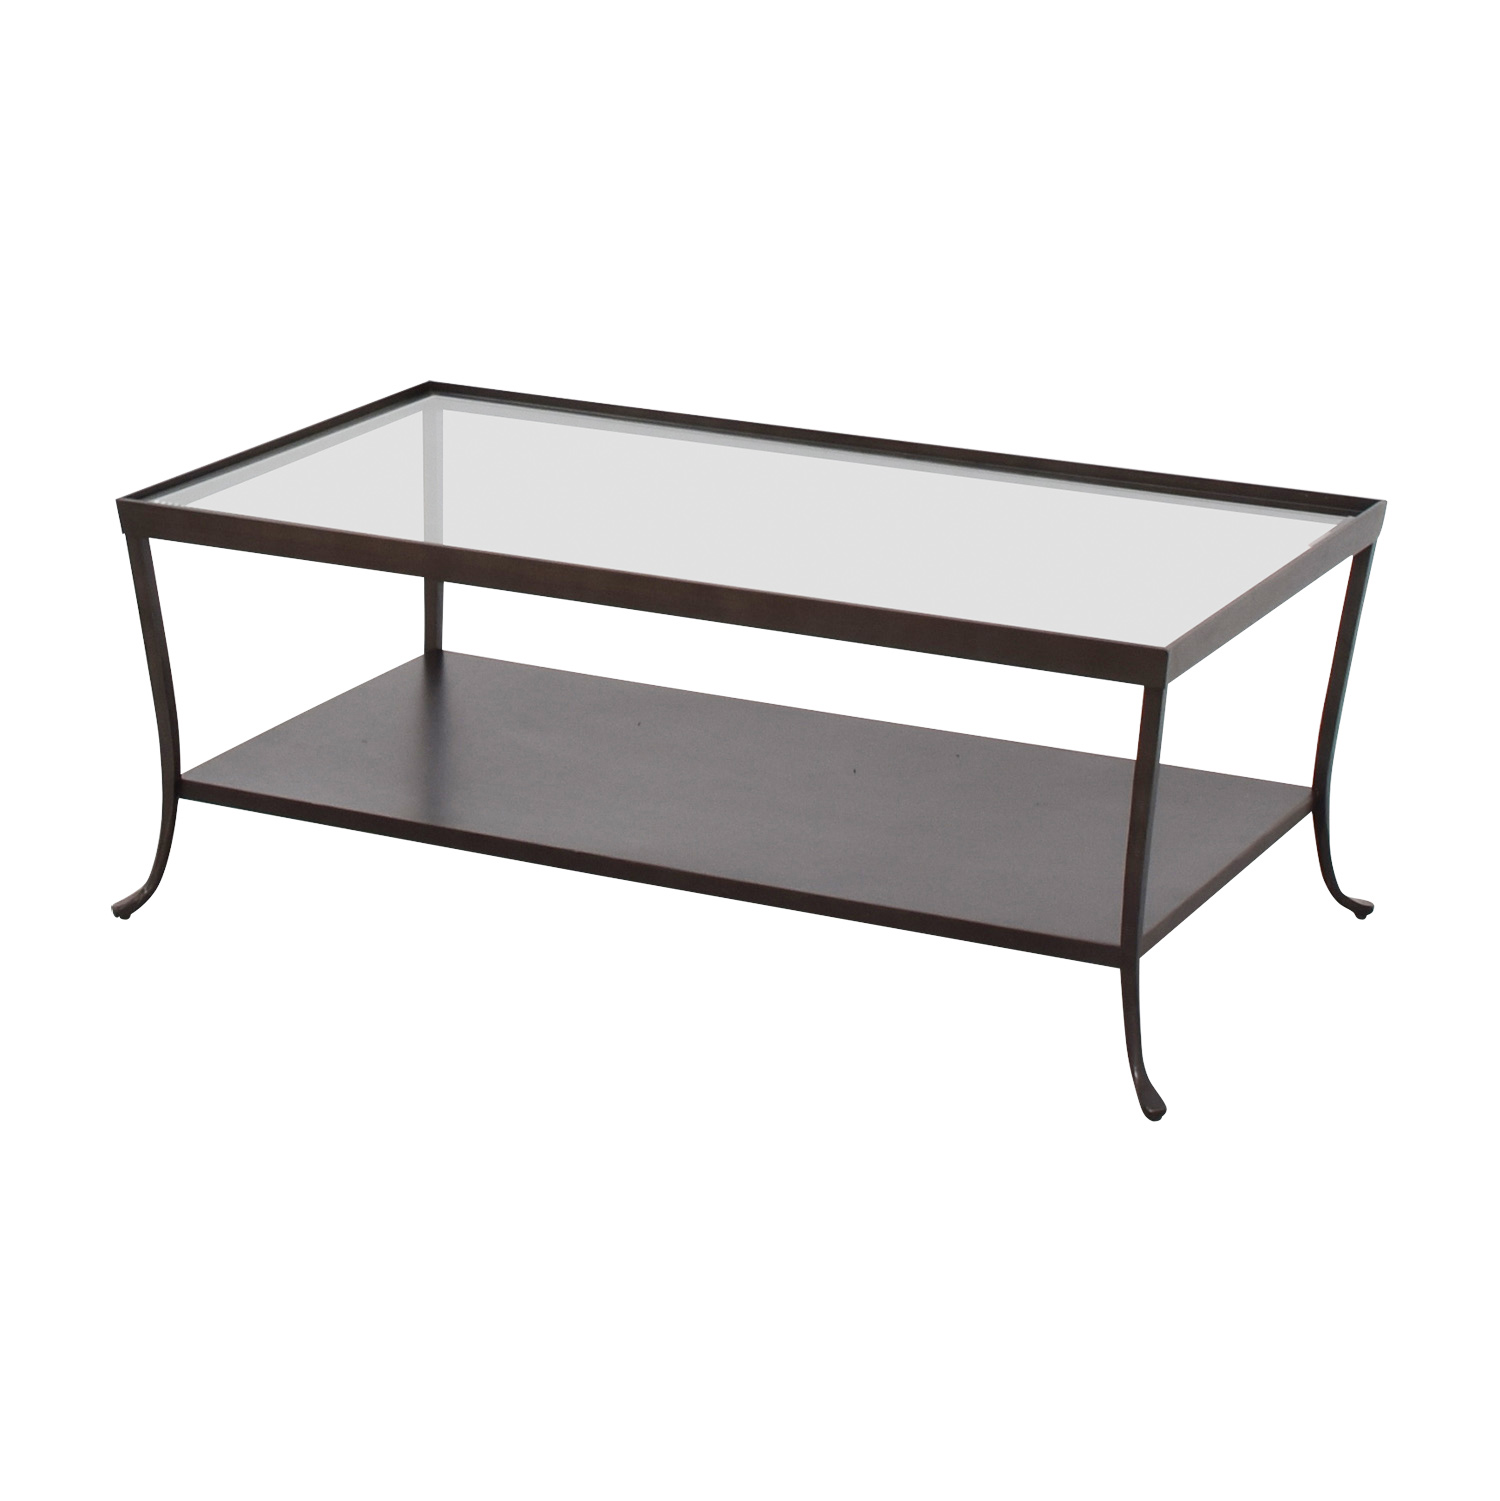 Glass Top Coffee Table with Metal Base dimensions